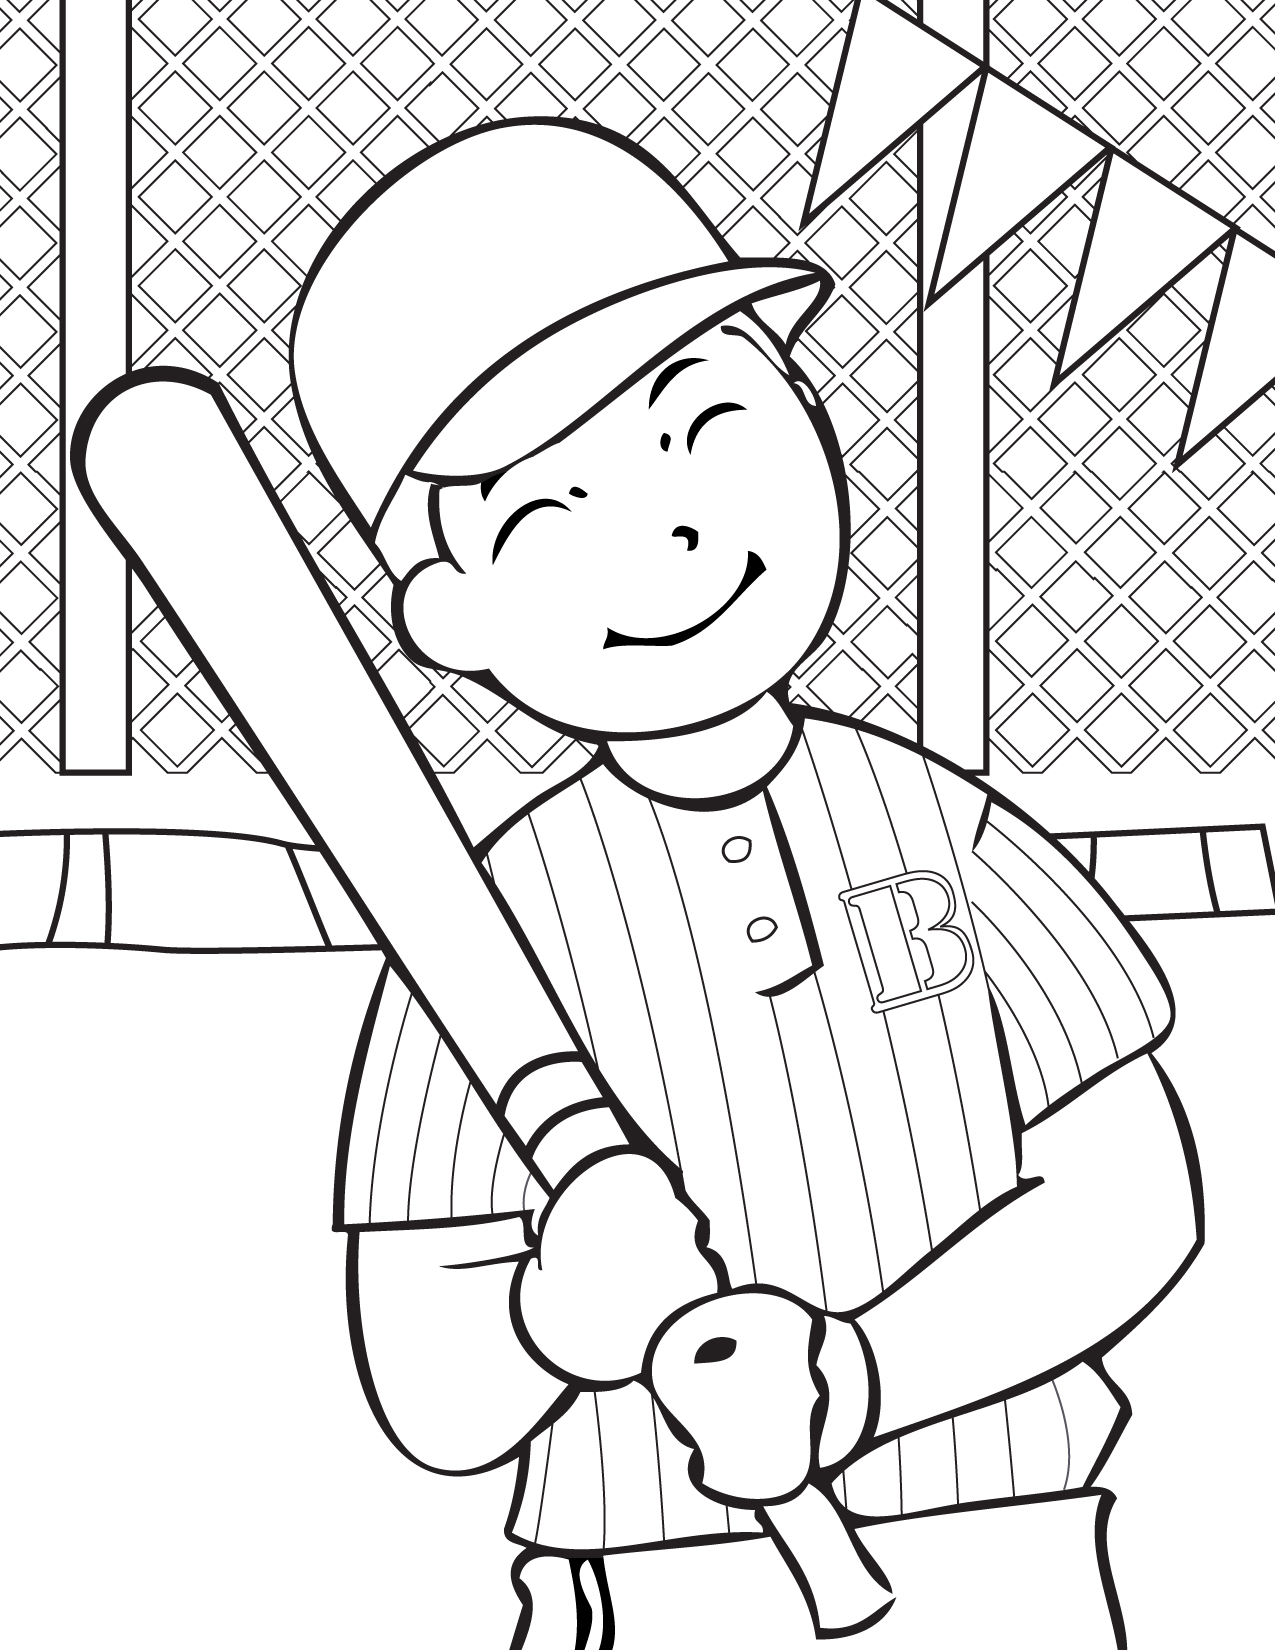 free printable baseball coloring pages for kids best coloring